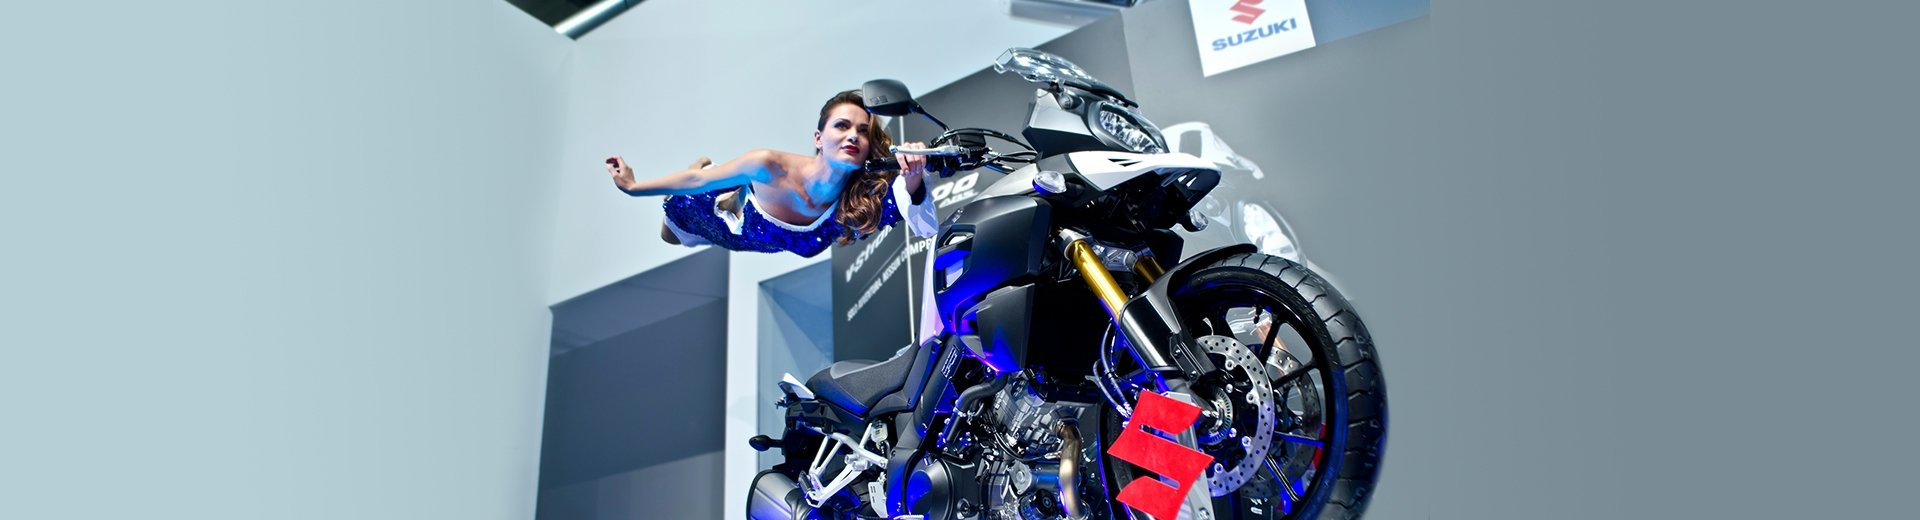 Suzuki Eicma - Magic Stunt